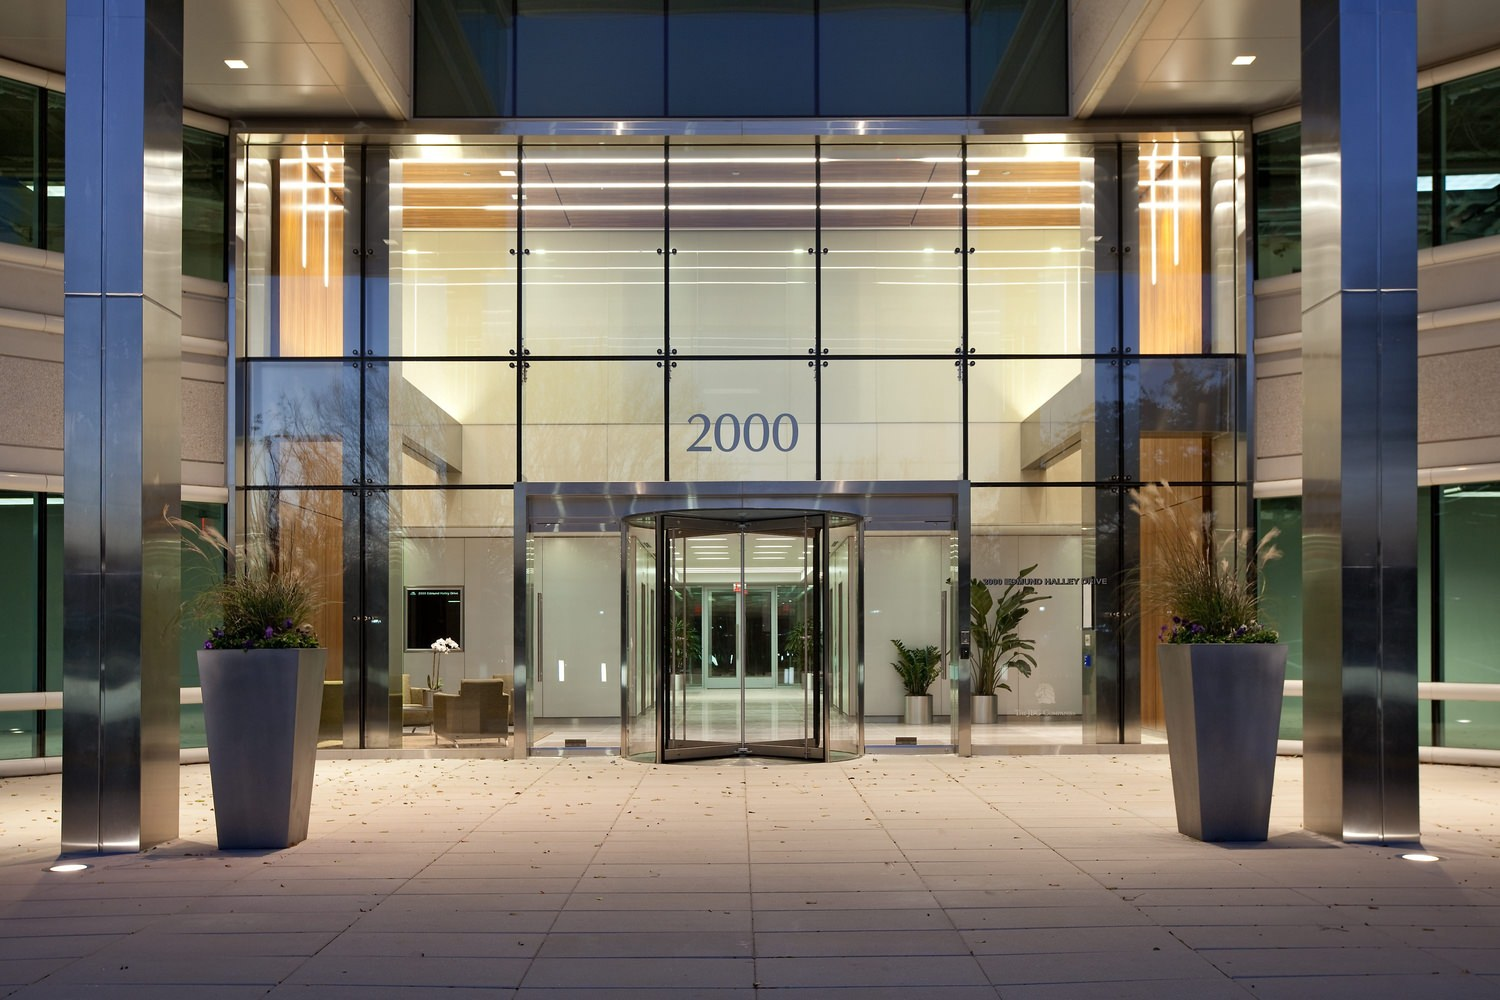 The front of a large building that has the address sign of 2000 and a wall full of glass windows.